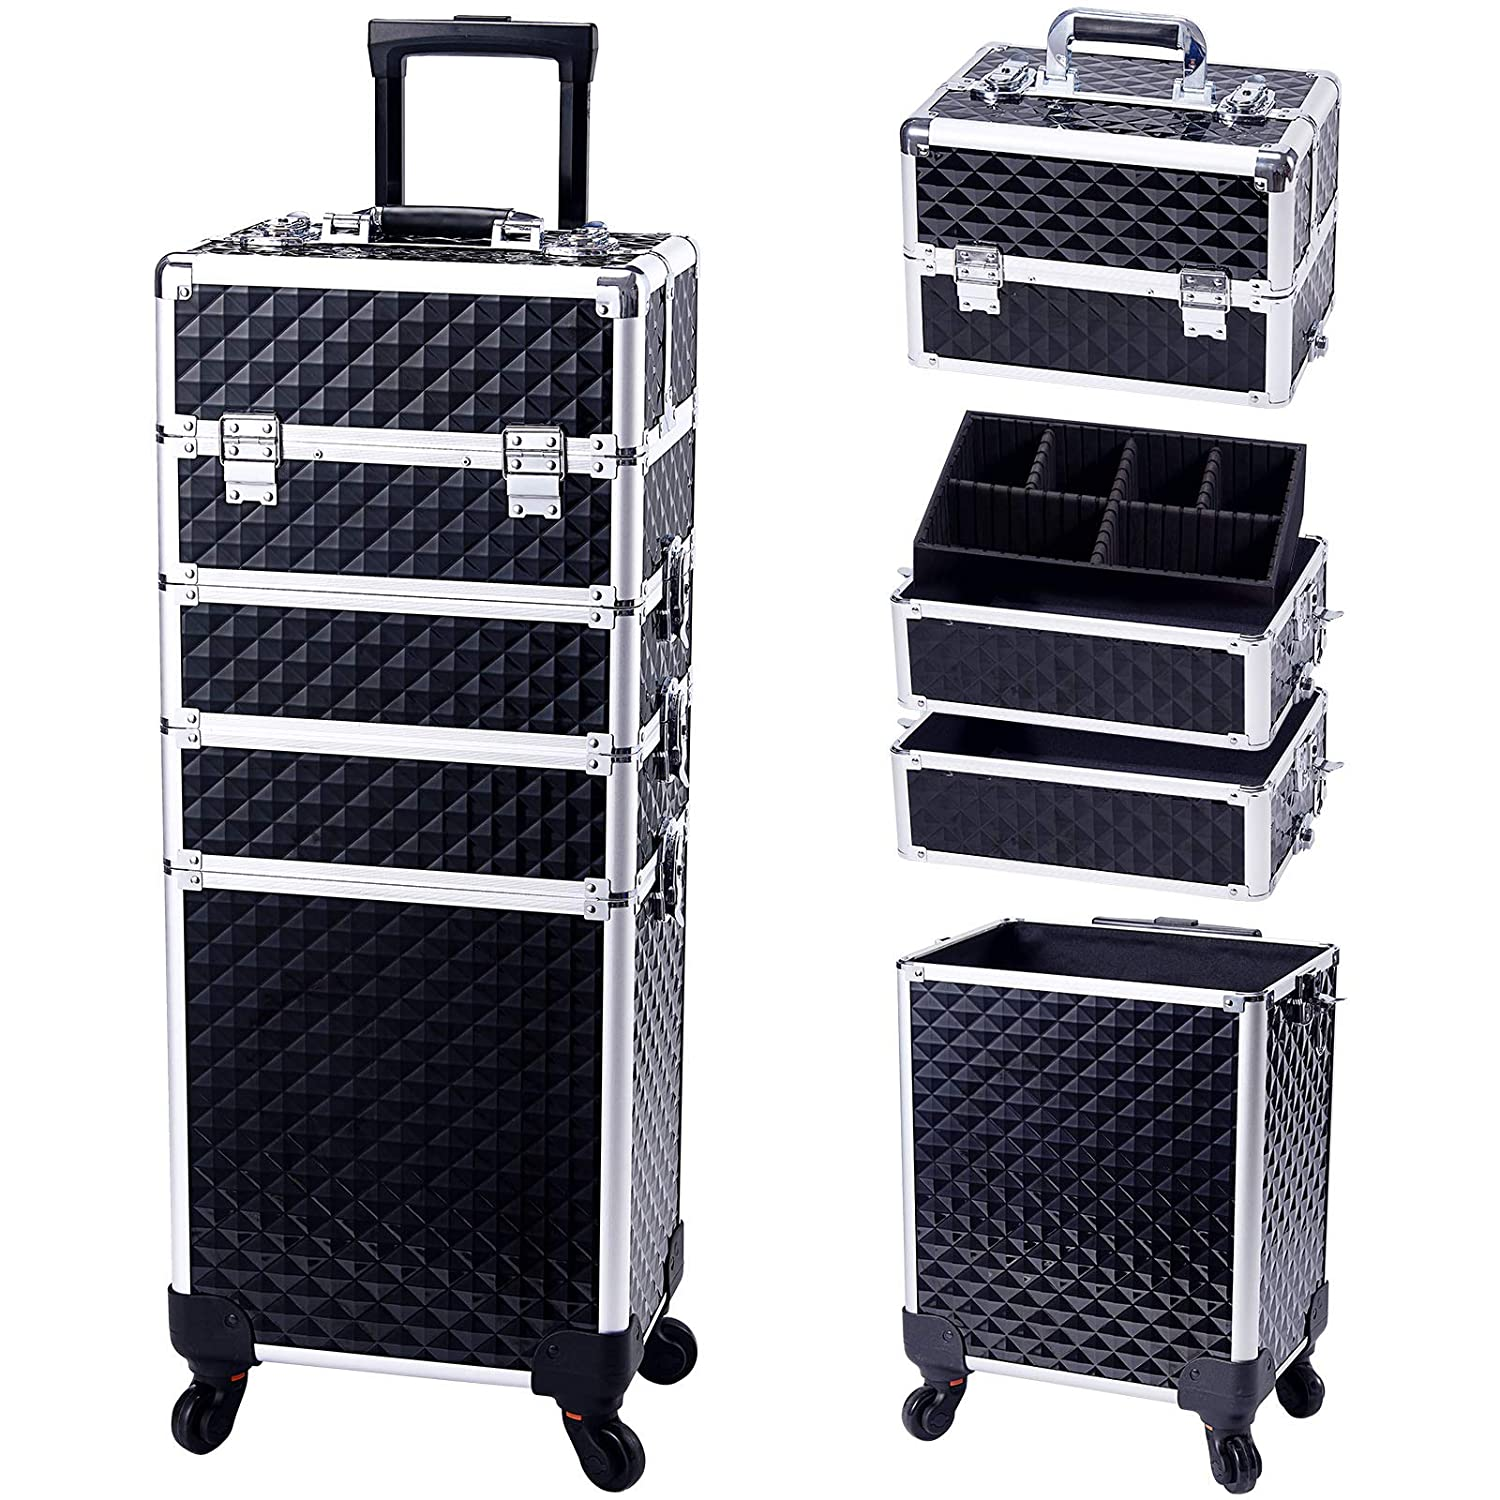 Carry your makeup on a trip with a trolley make-up case